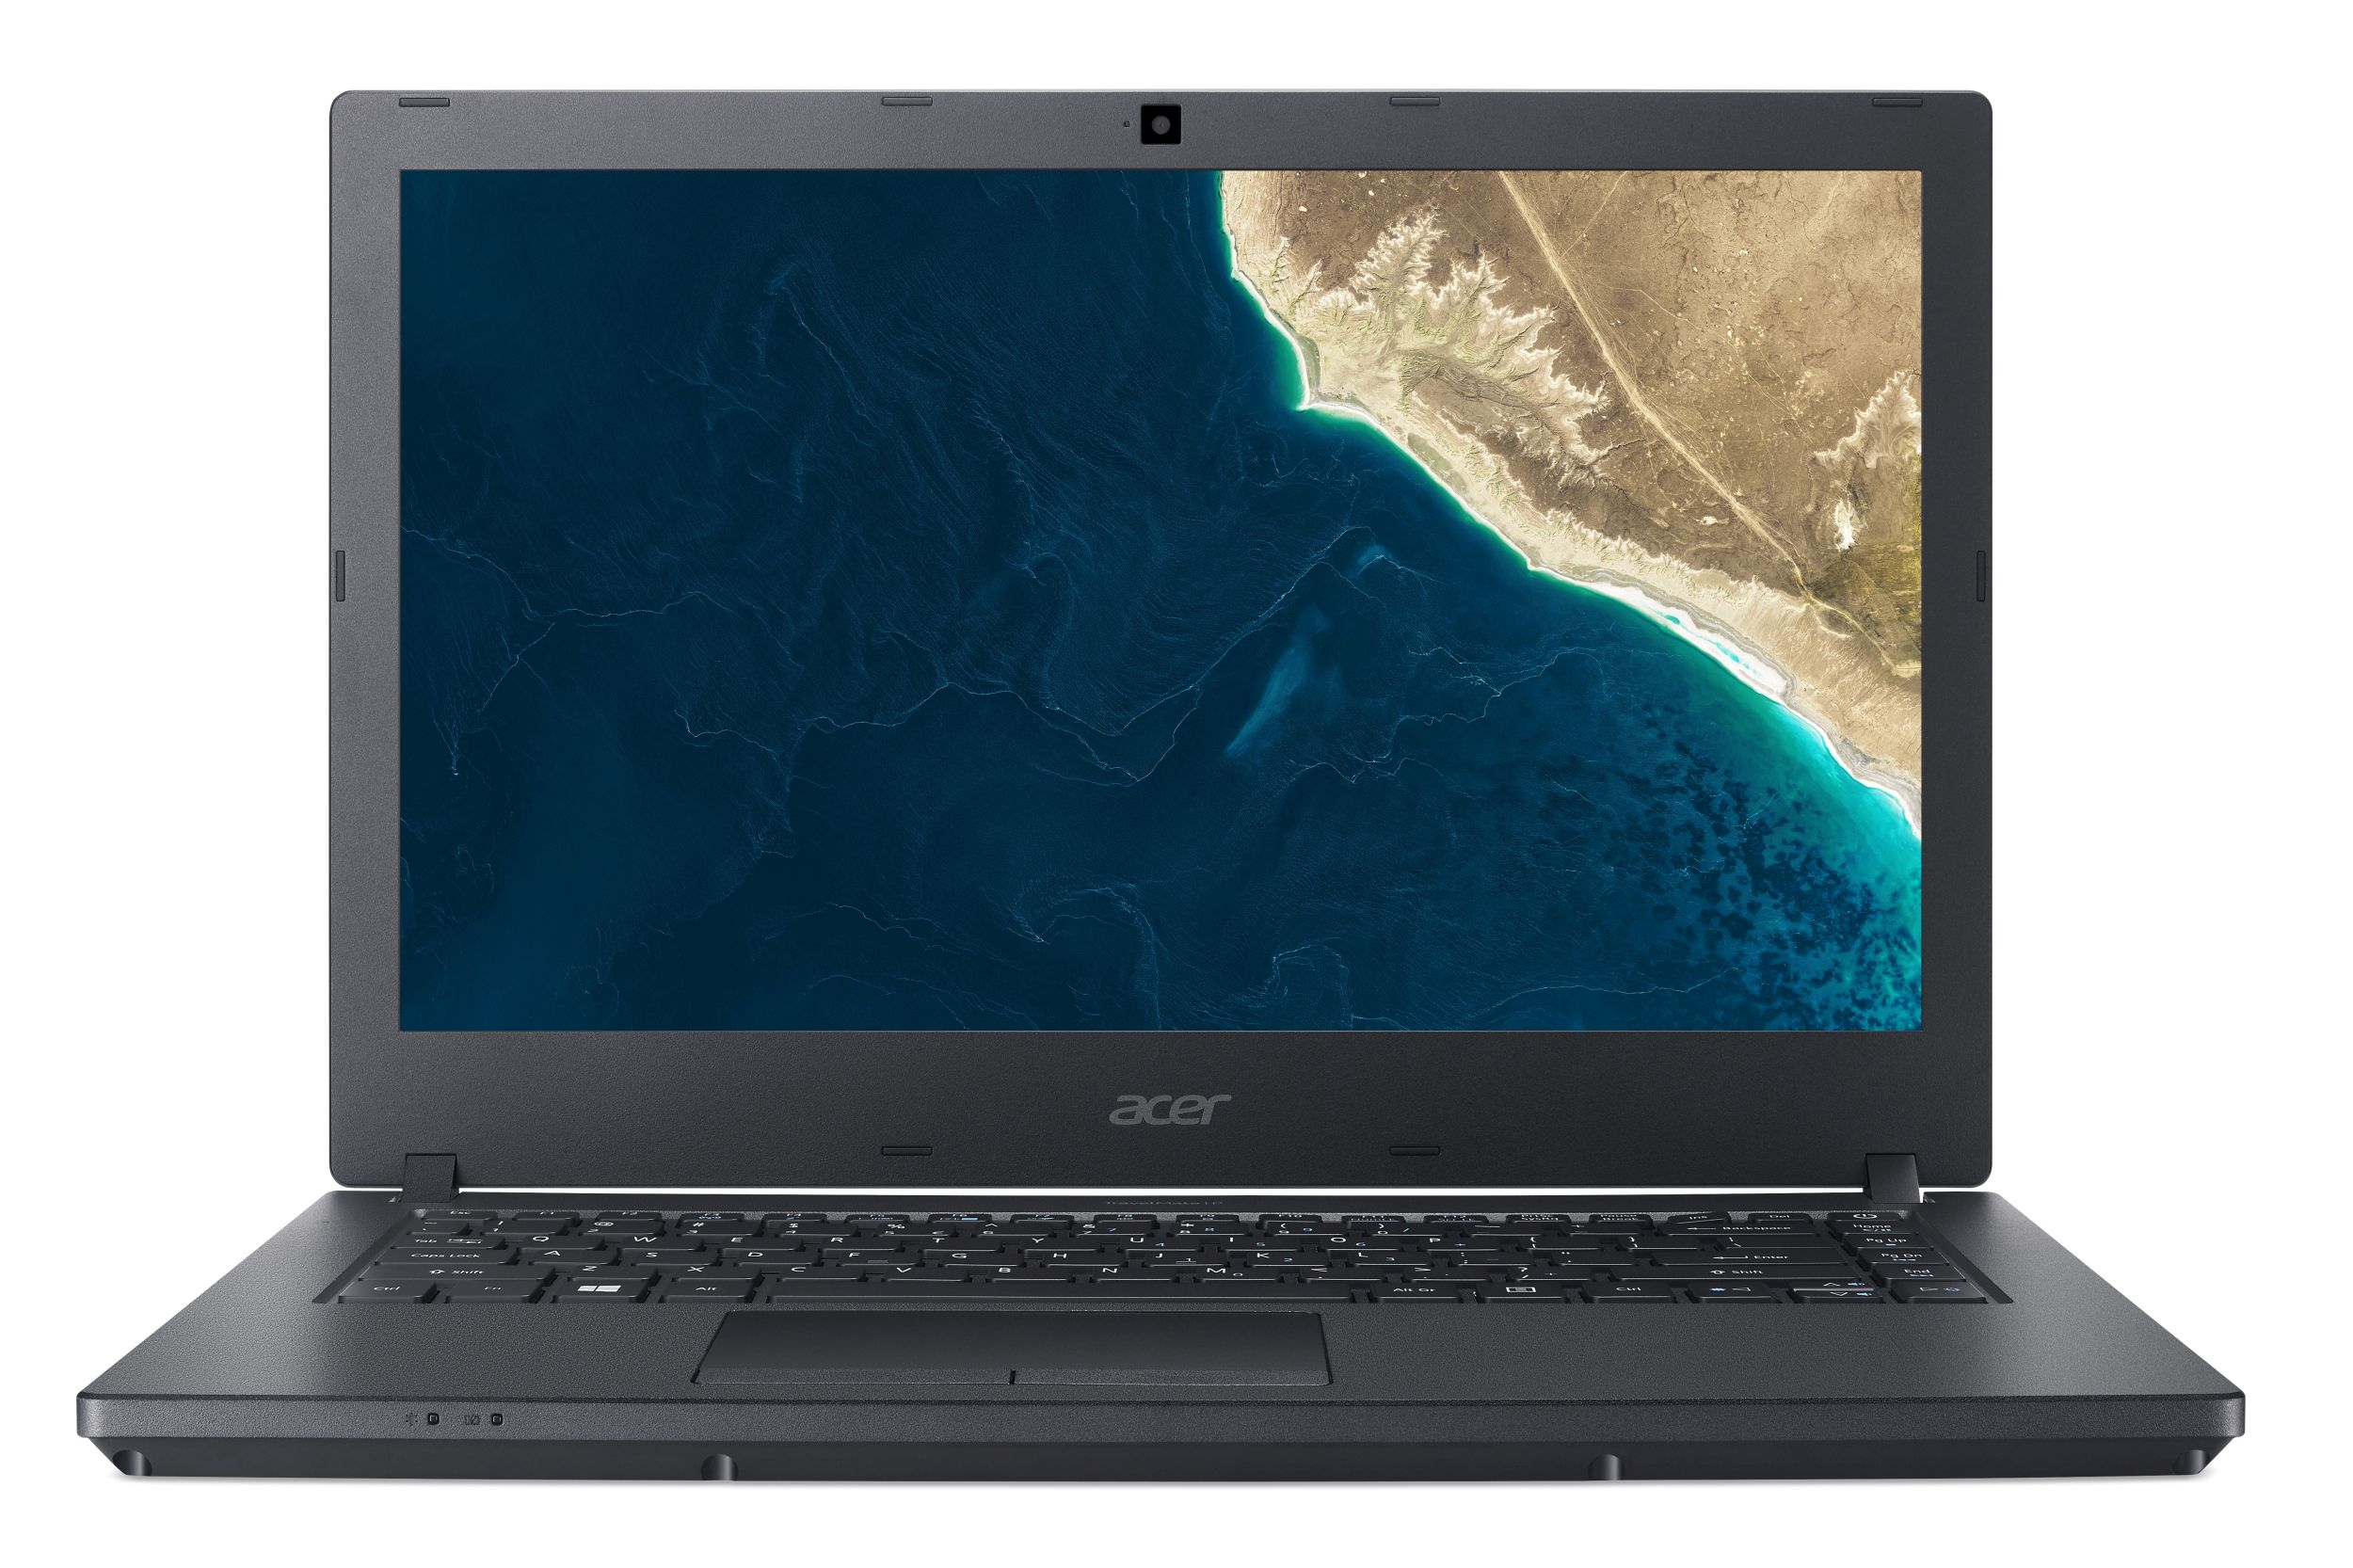 "Acer TravelMate P2410-M-56XN i5-7200U/4GB+N/256GB SSD+N/HD Graphics/14.0"" FHD IPS LED matný/BT/W10 Pro/Black"